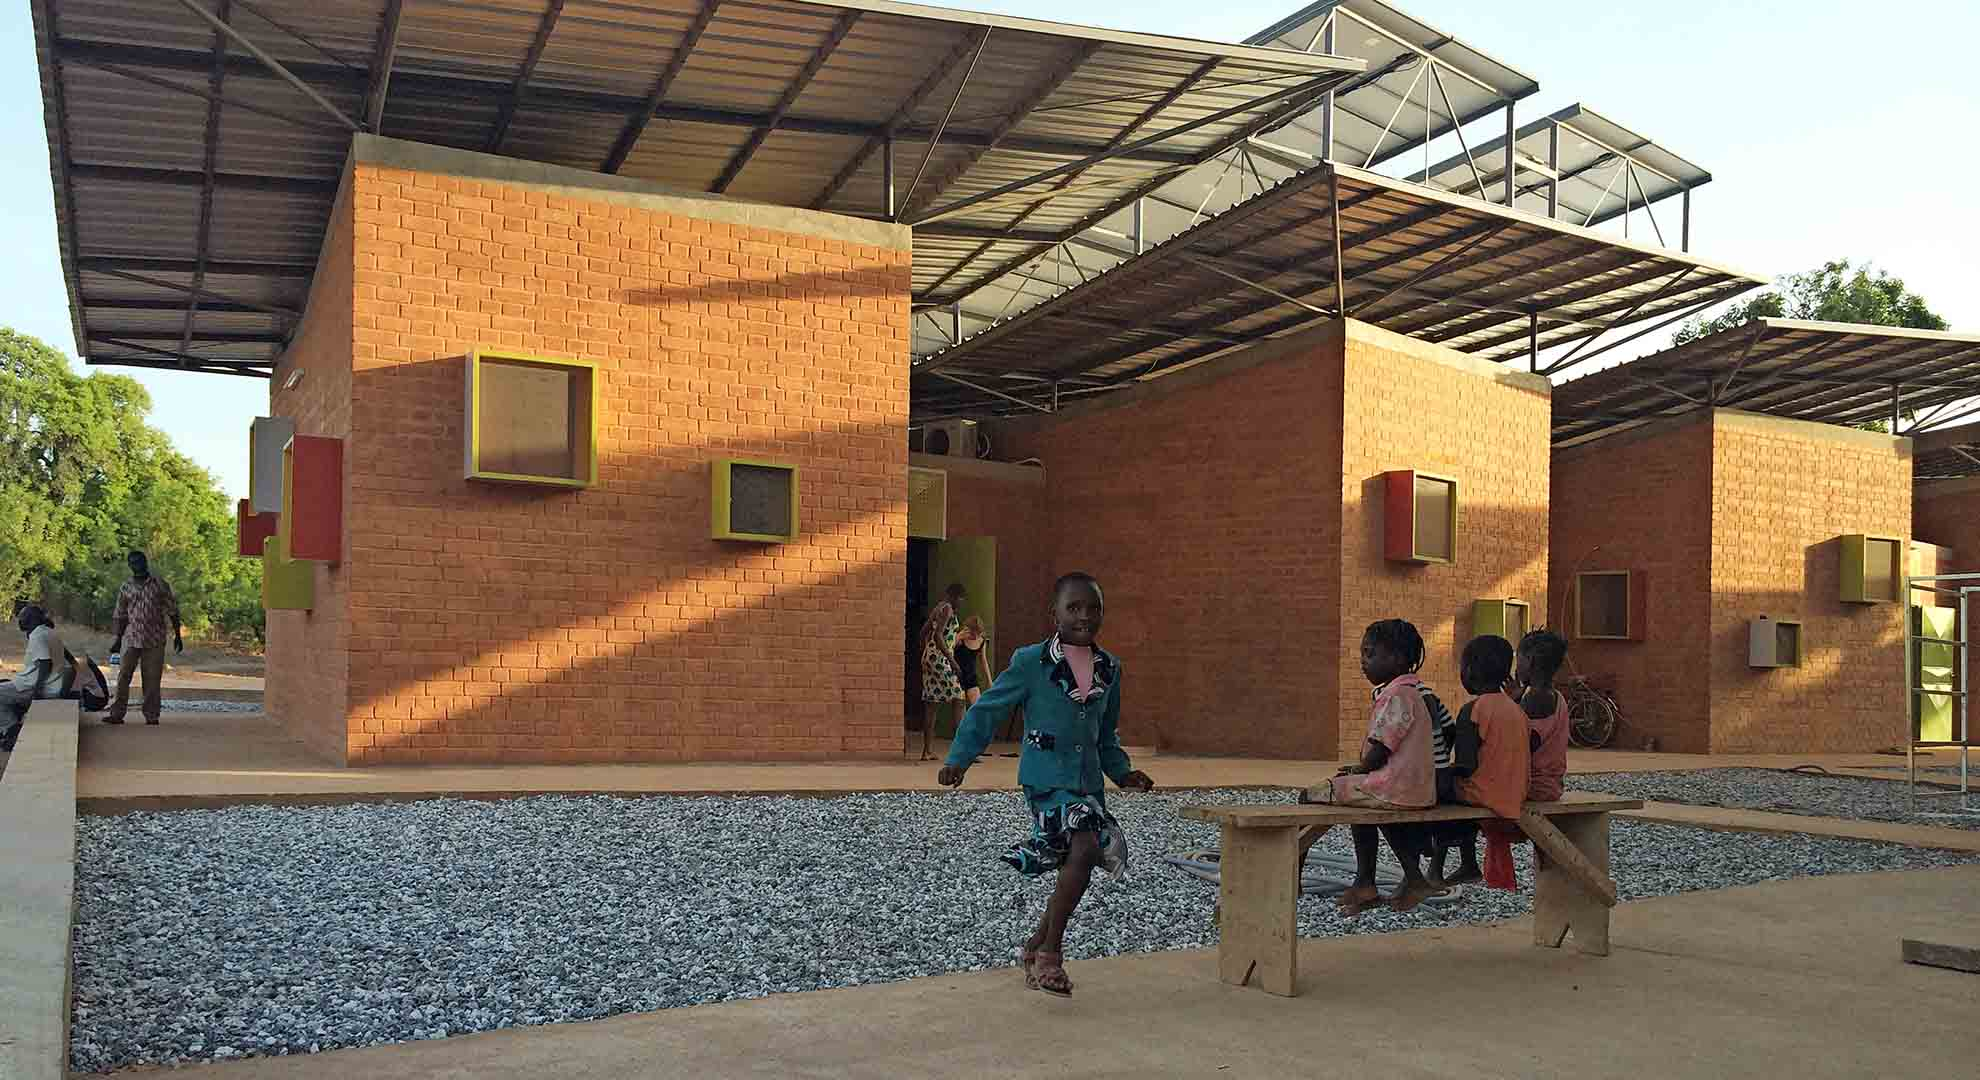 Hospital design in Léo, Burkina Faso, faced the problem of an extreme climate